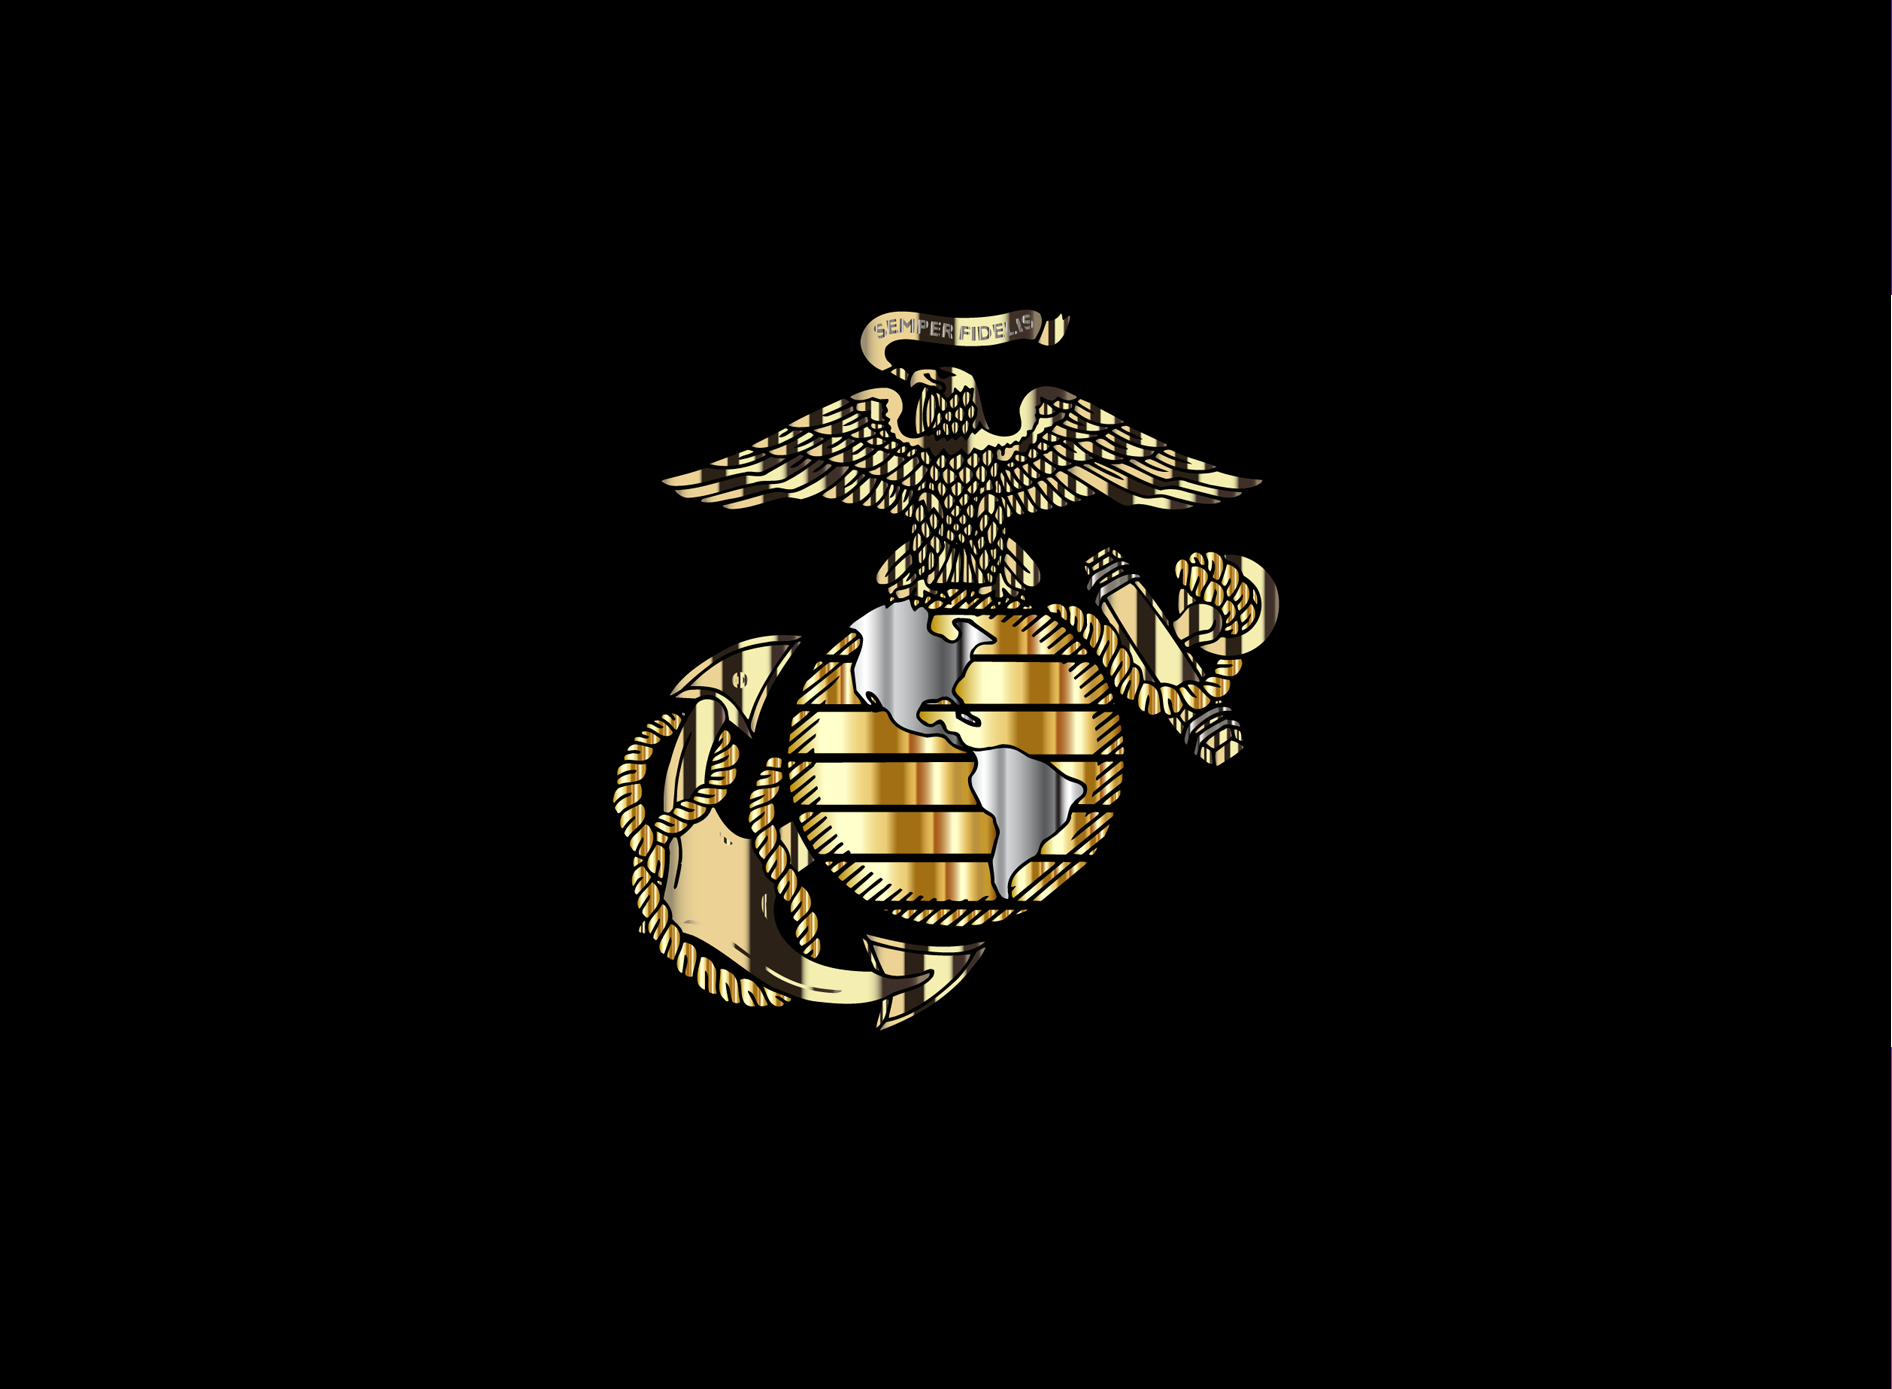 Us Marine Corps Wallpapers Hd Wallpapers 1892x1389